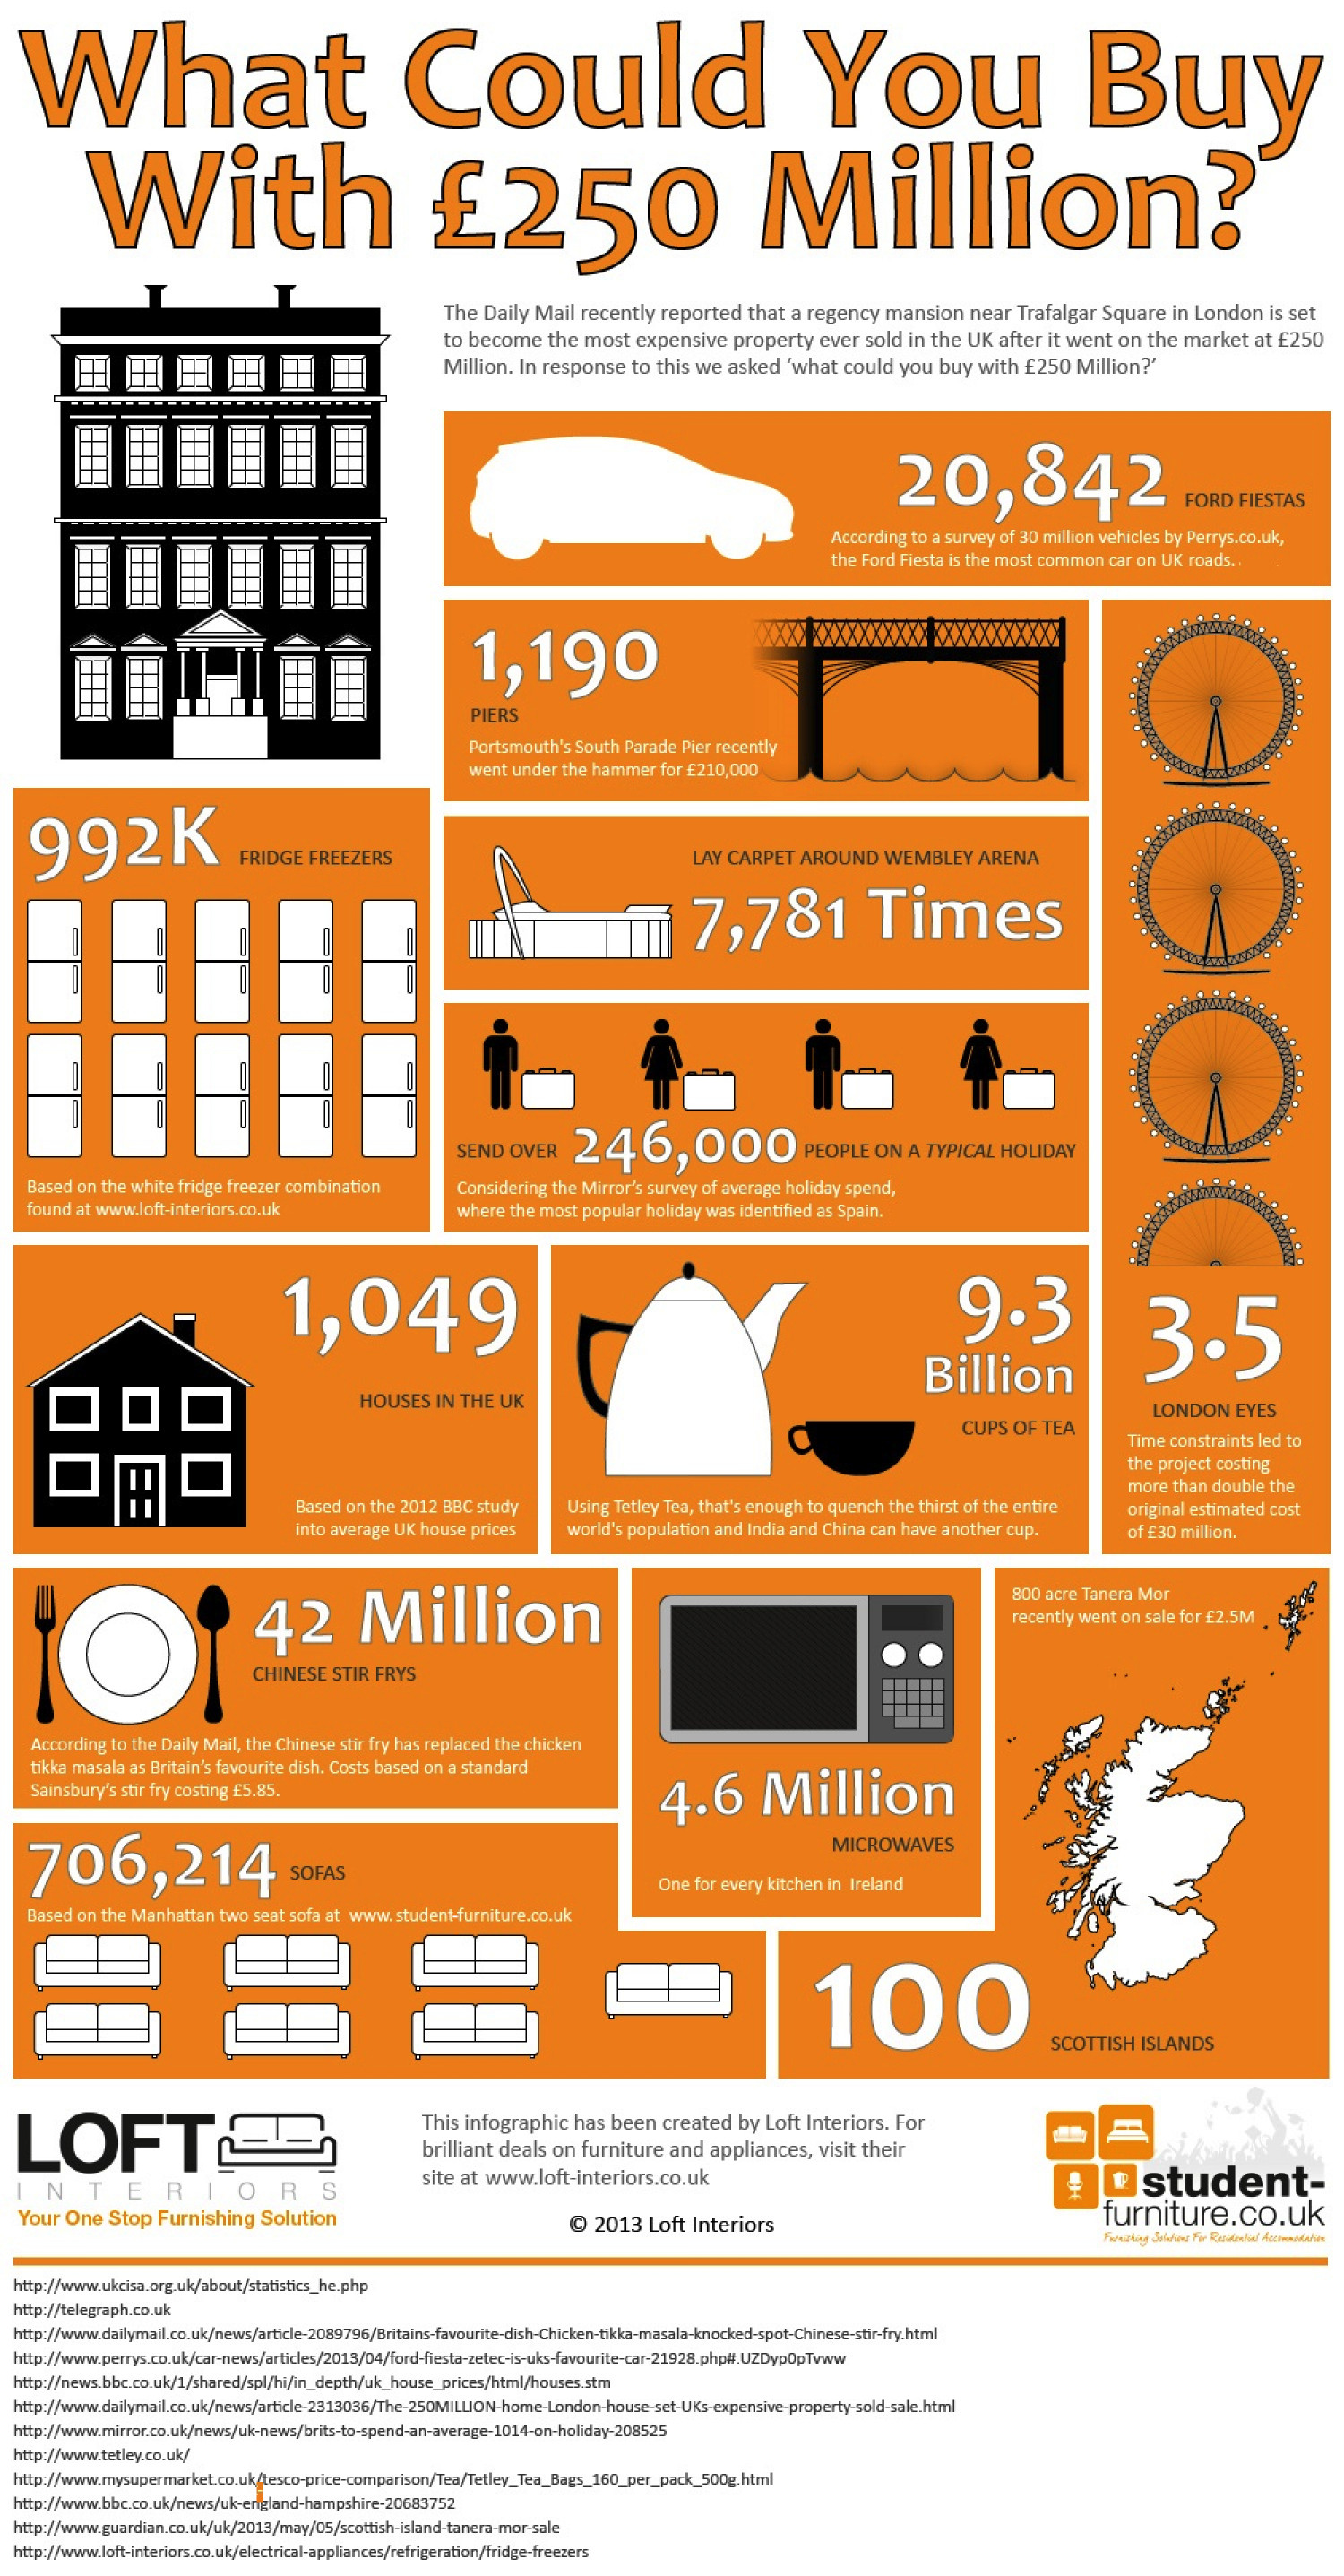 What Could You Buy With £250 Million Infographic